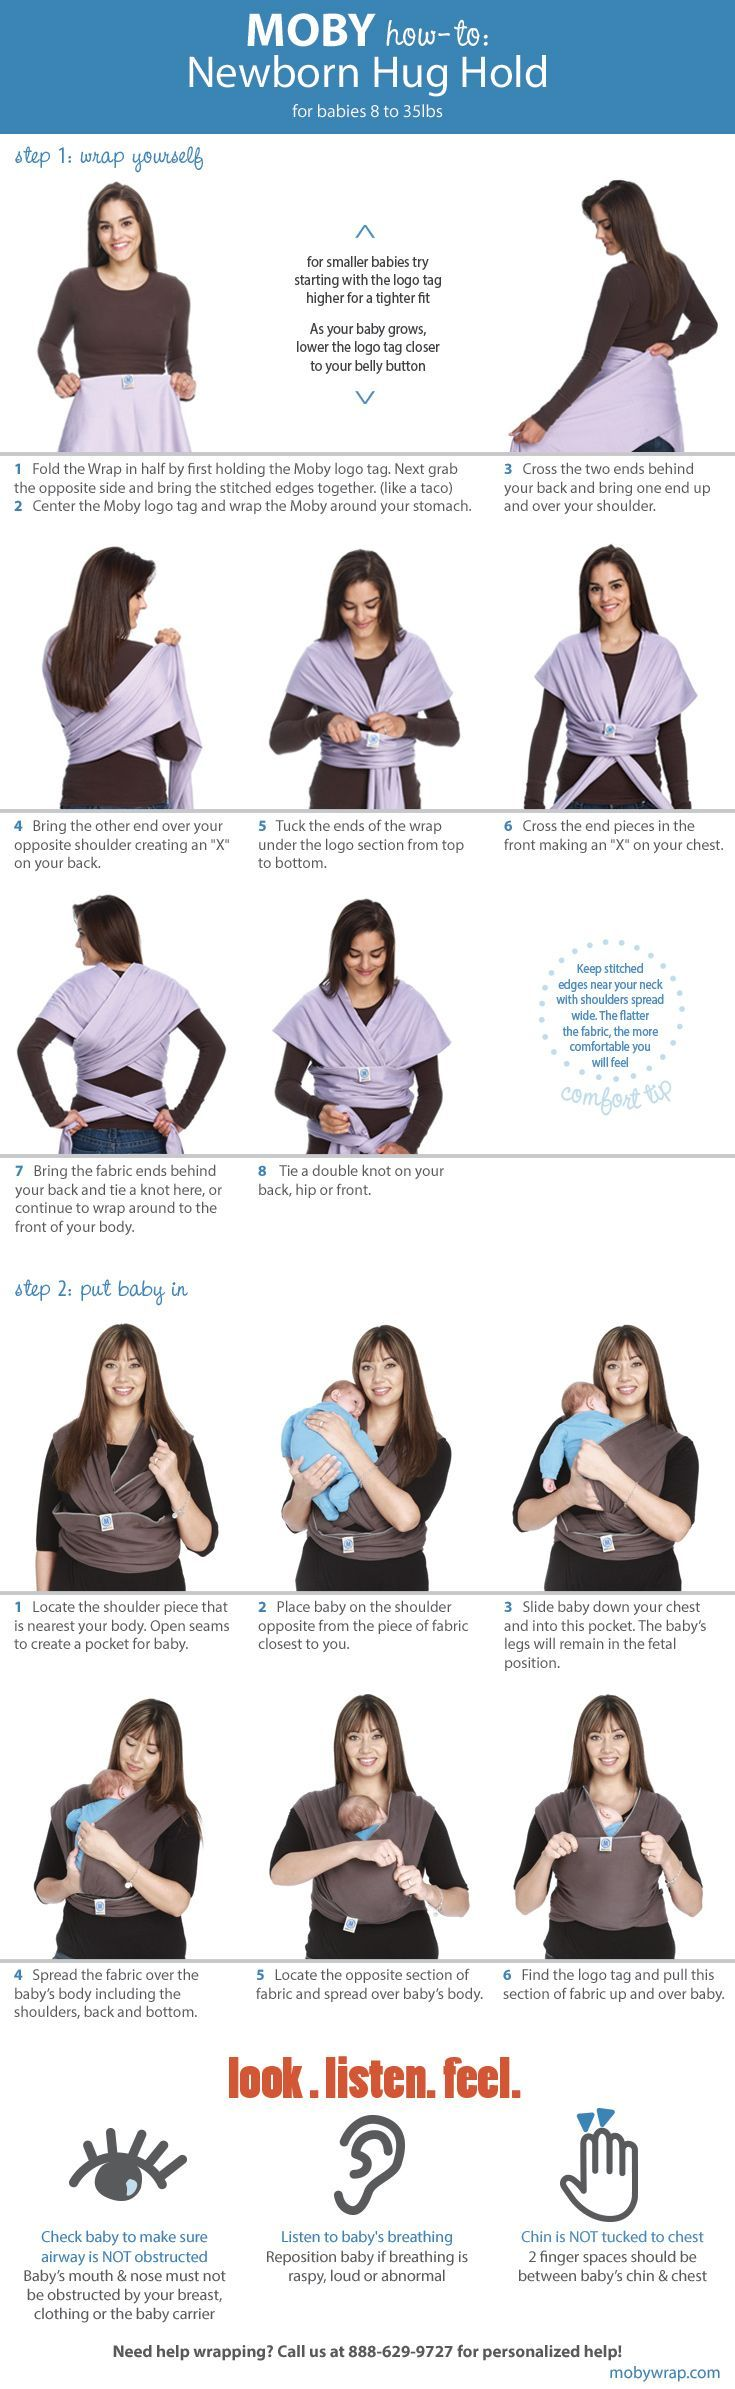 How to: the Newborn Hug Hold. Check out our youtube channel for video! #mobywrap #babywearing